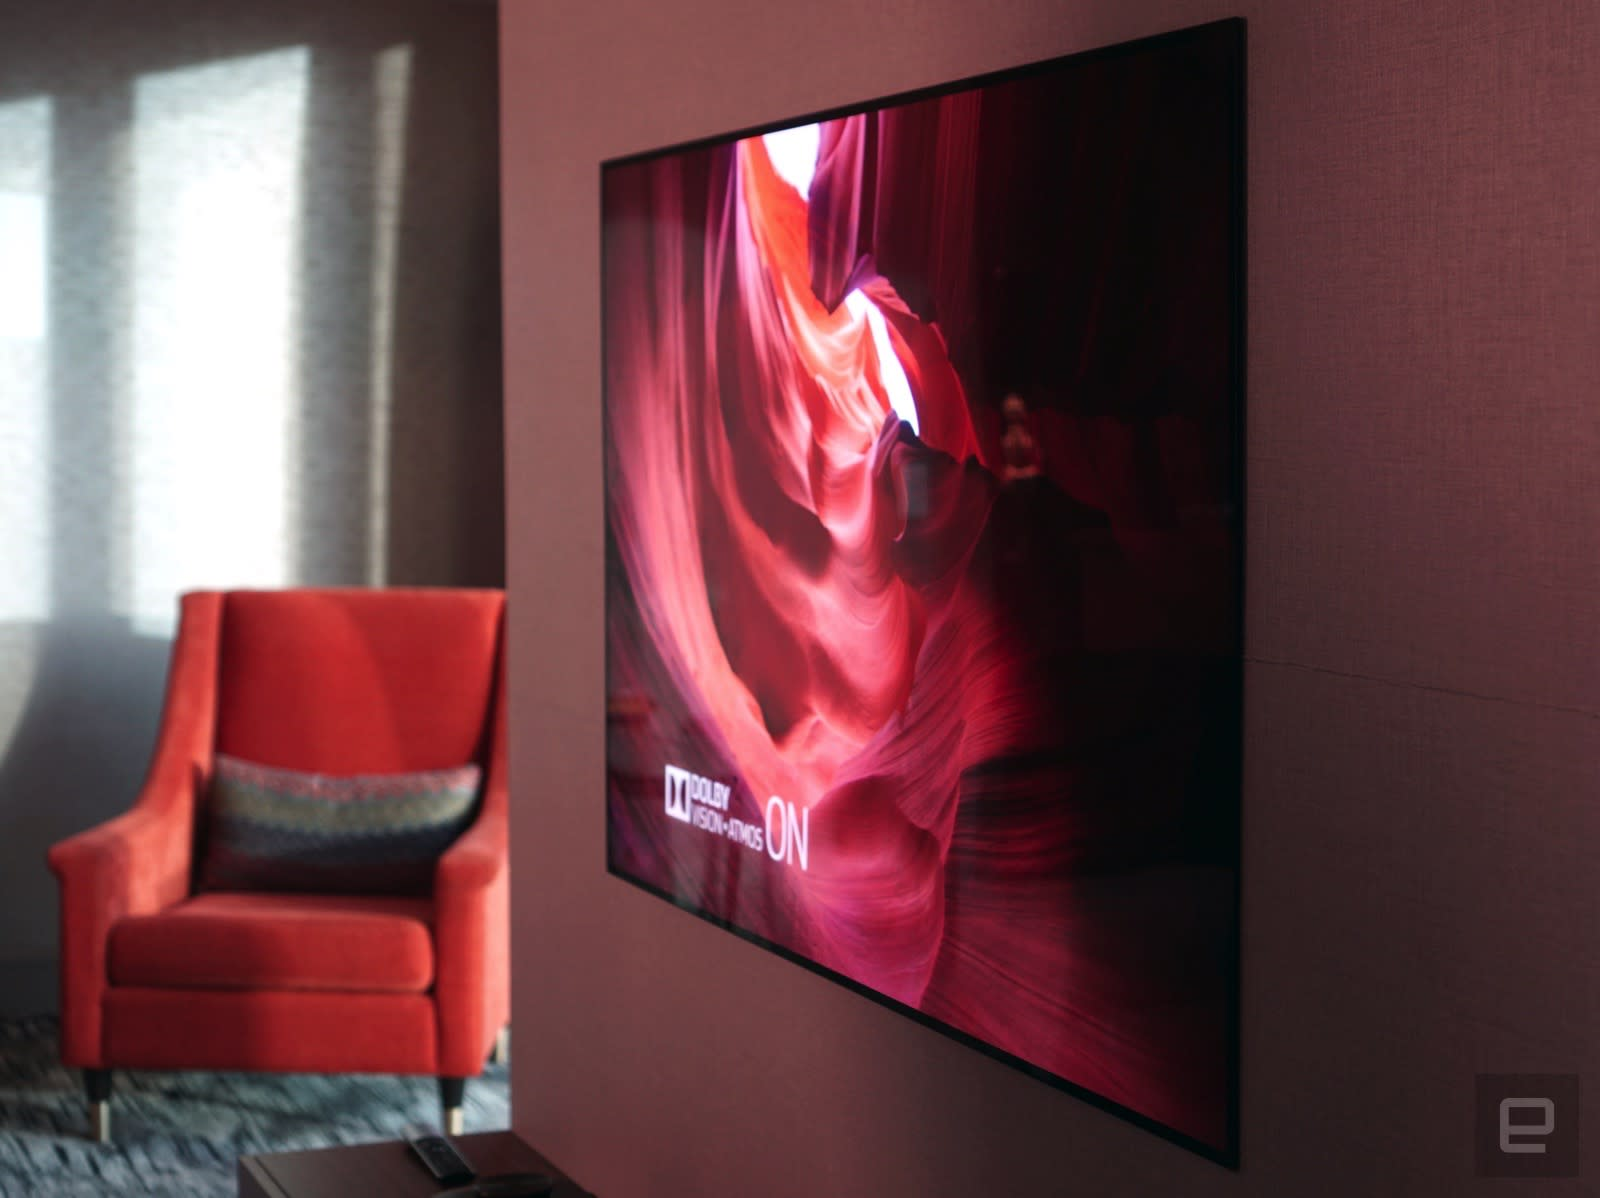 LG's new OLED TVs are so thin they have to be wall mounted